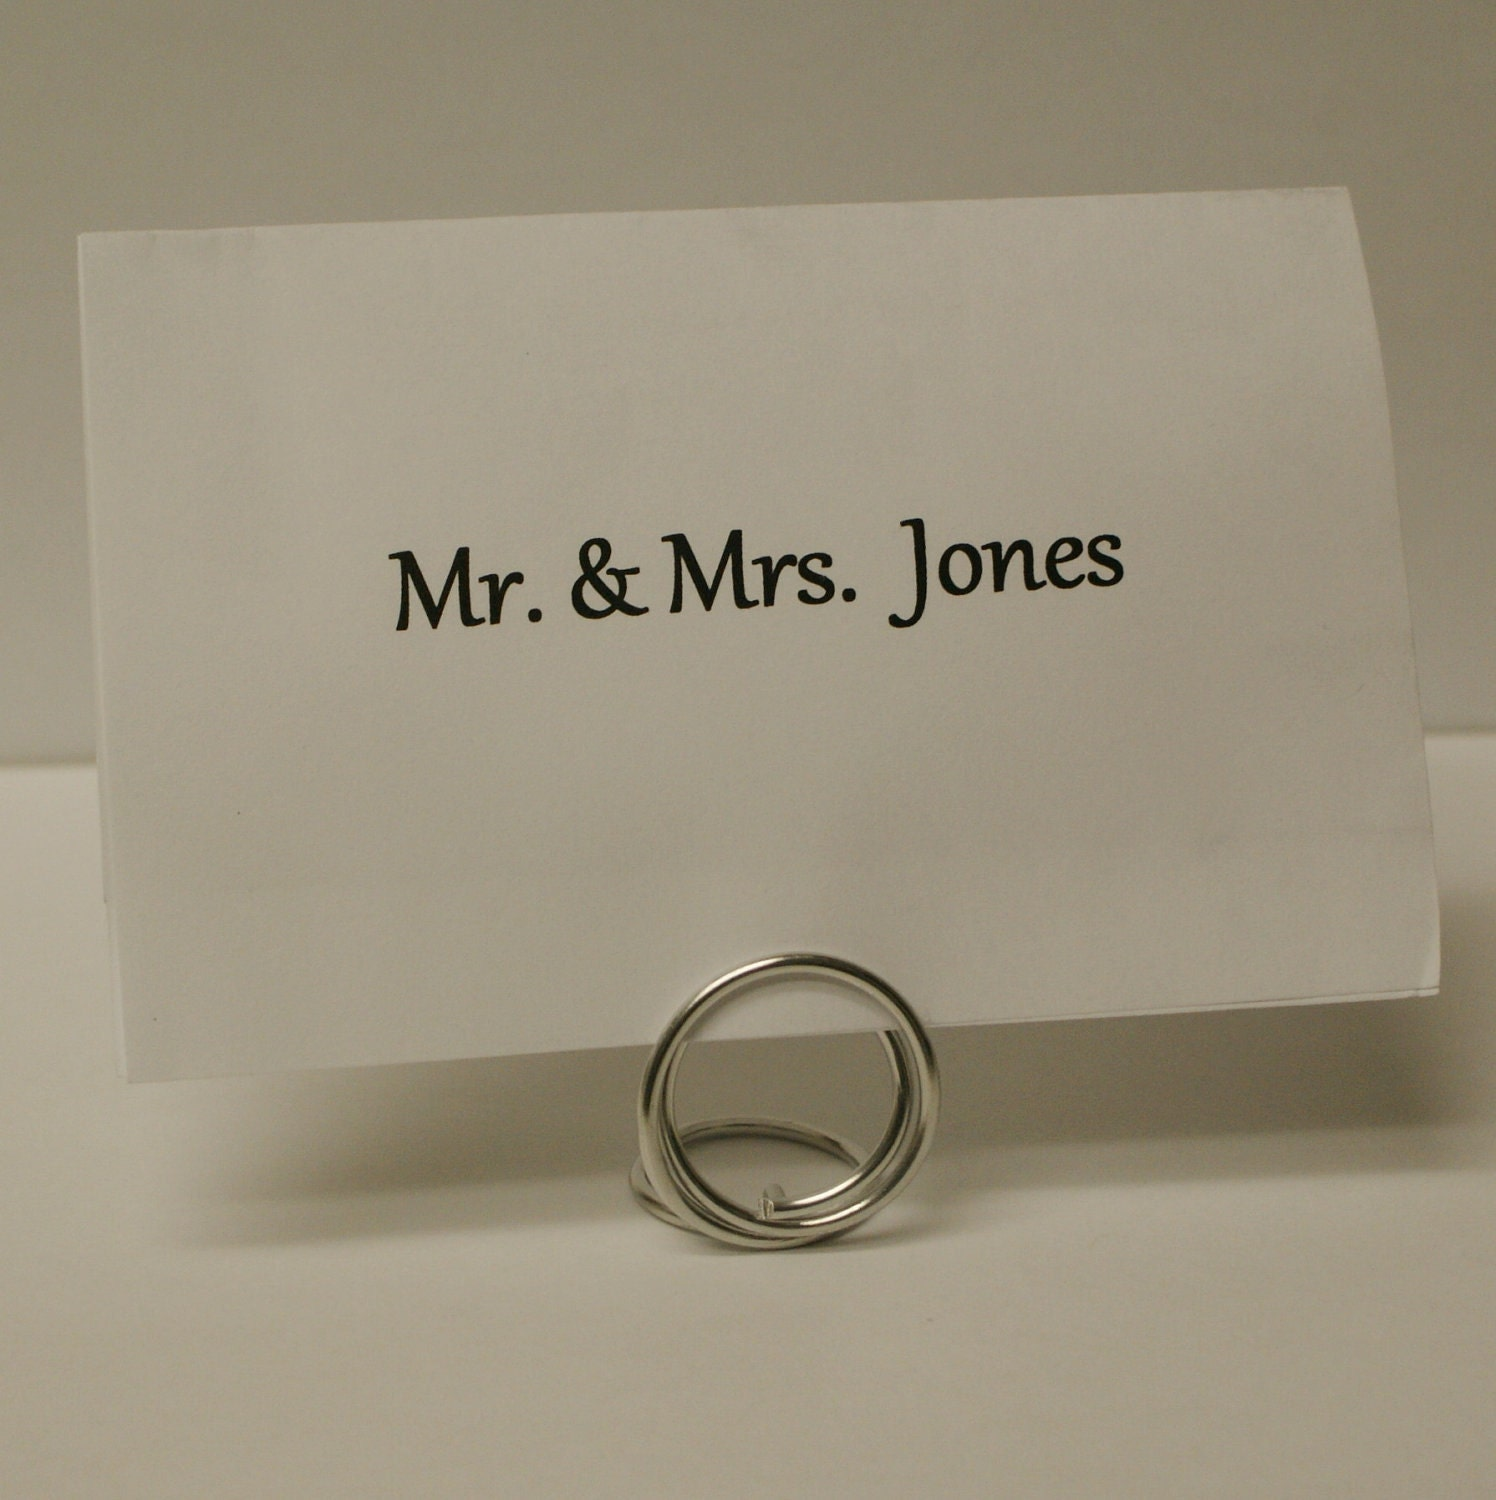 Silver name card place holders set of 20 small by cufflinked for Place settings name card holders